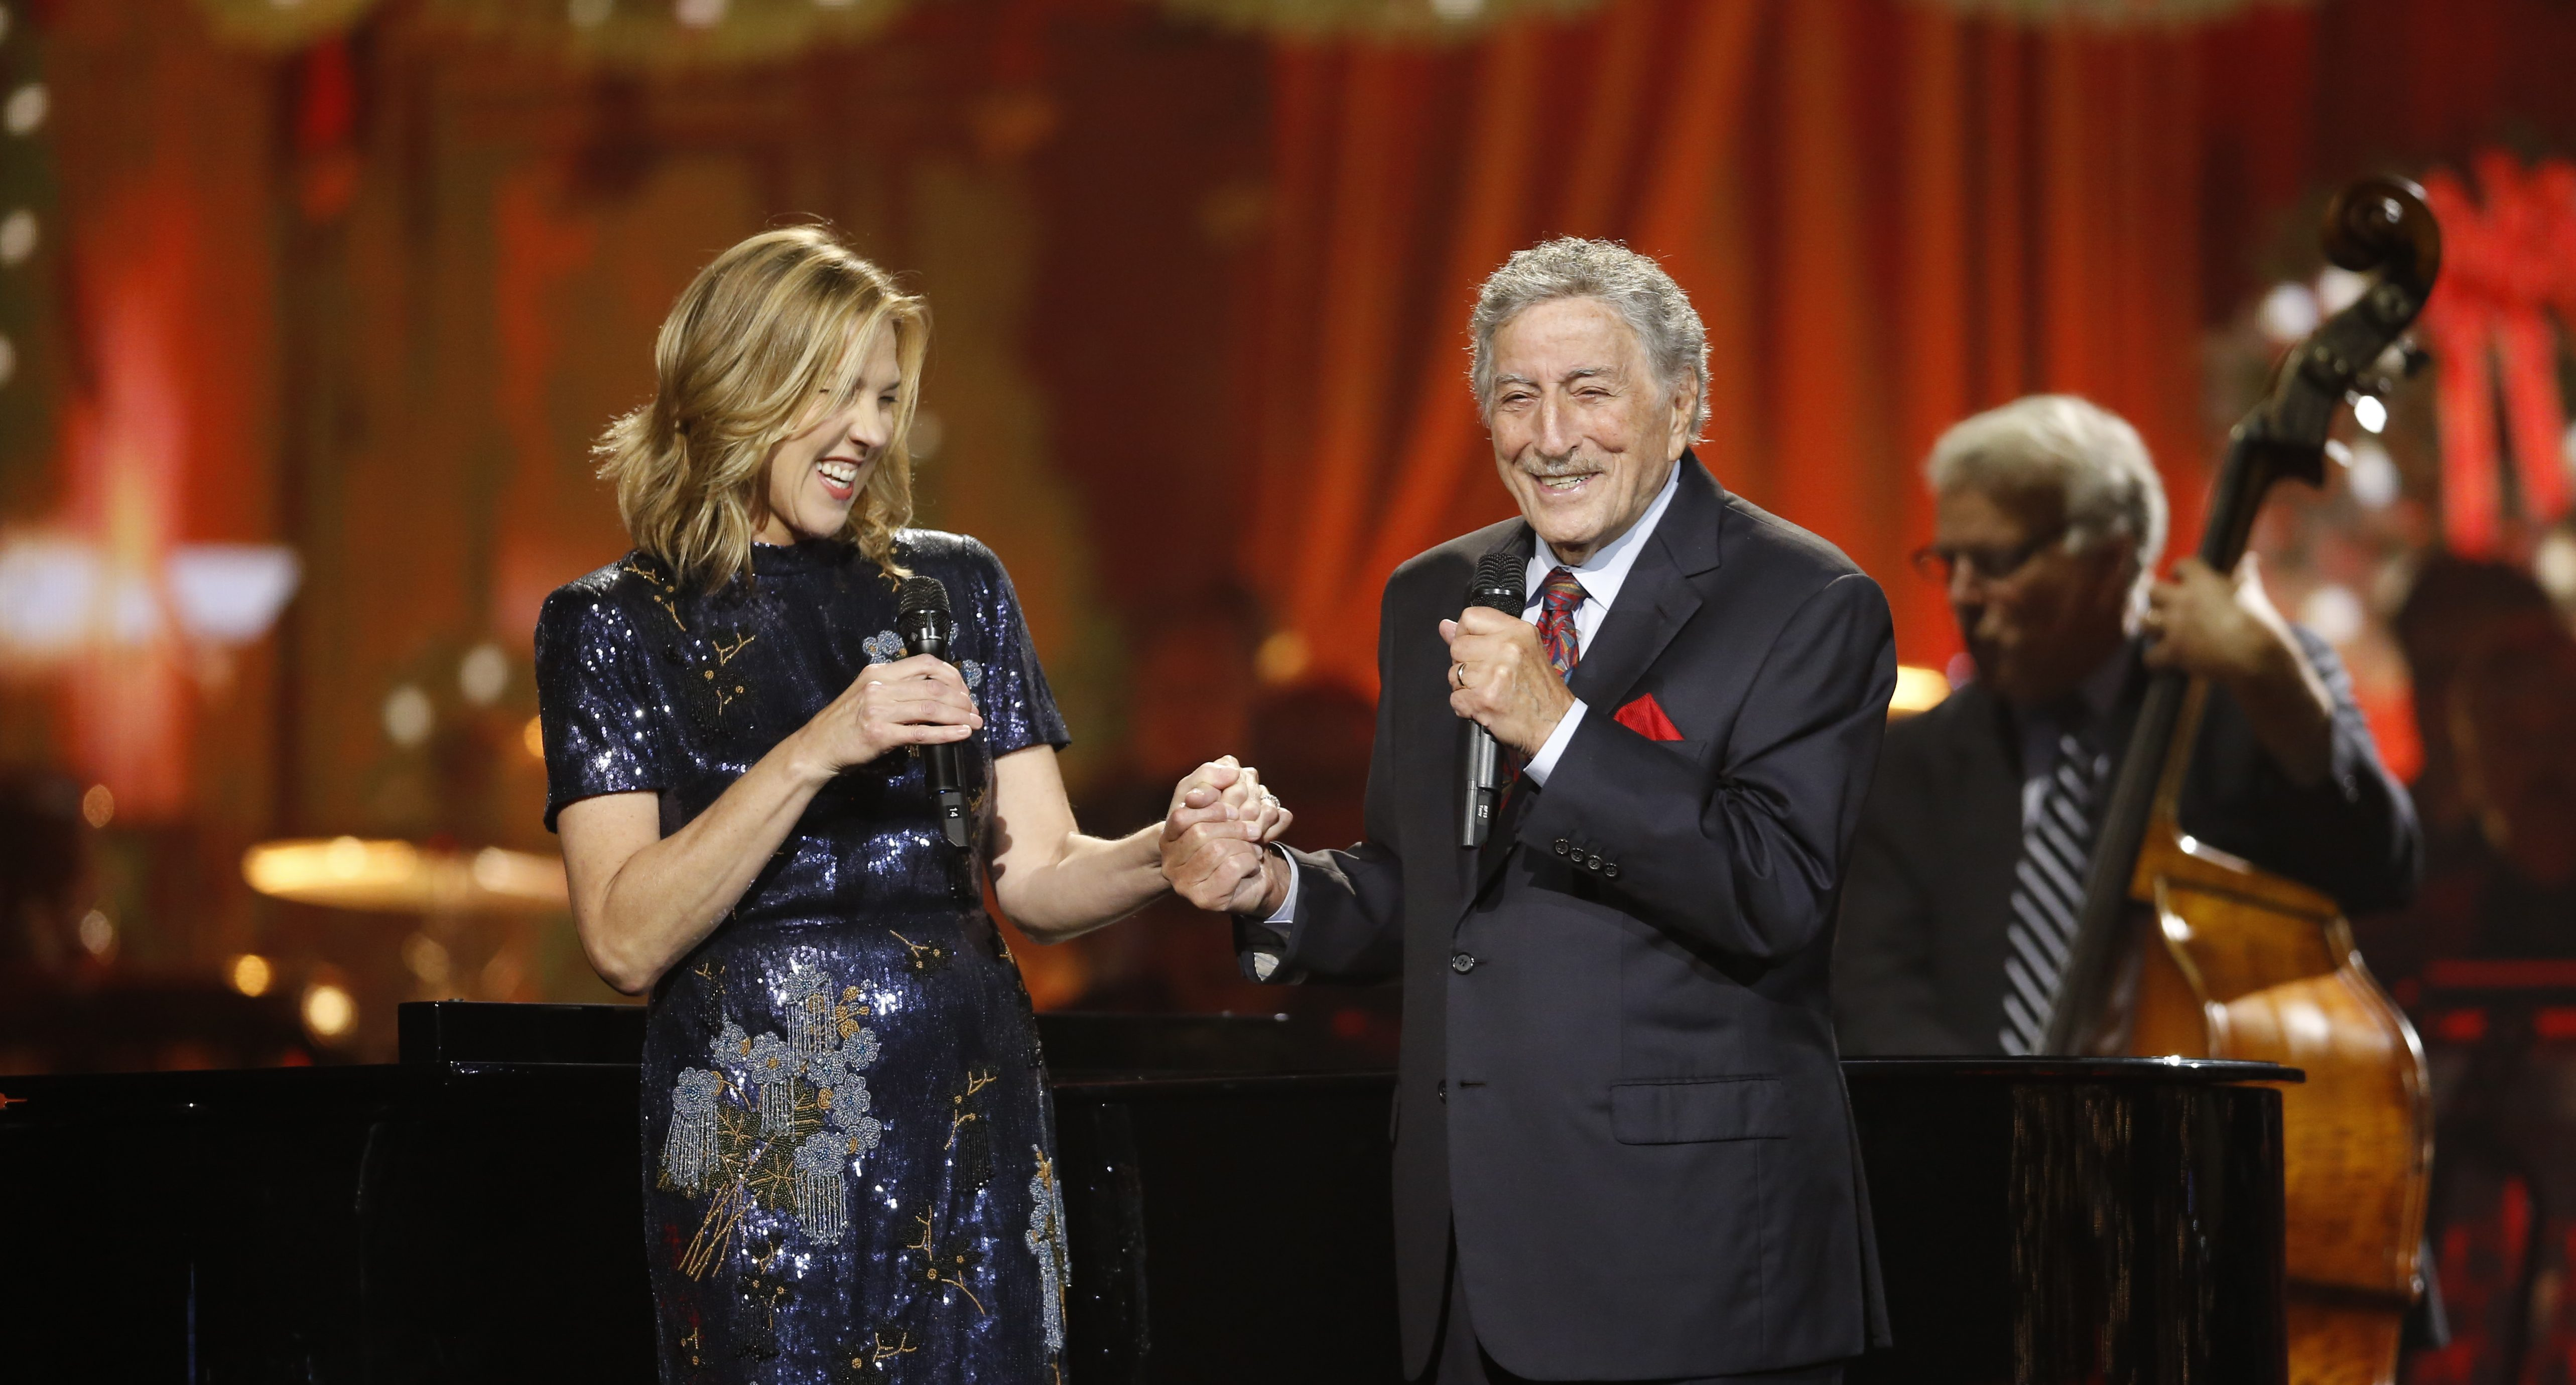 Cma Country Christmas.Cma Country Christmas Set To Air Dec 10 On Abc Belmont